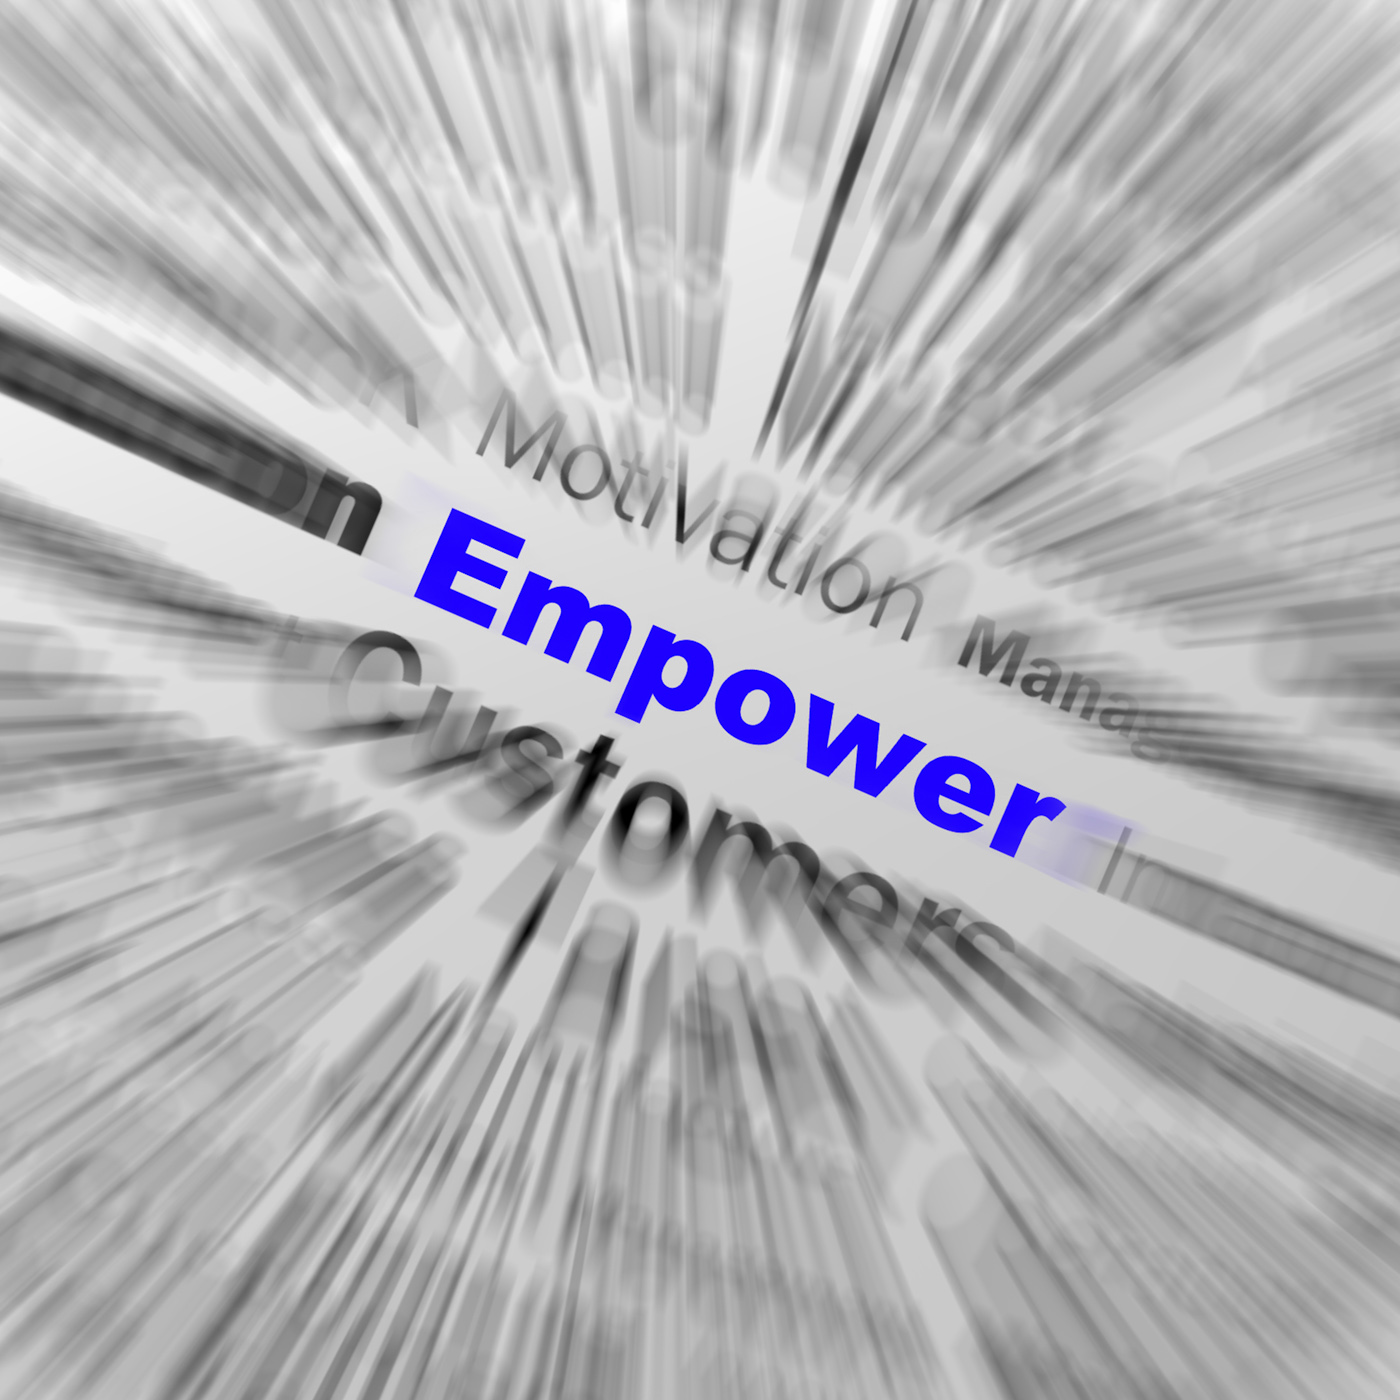 Empower sphere definition displays motivation and business encourageme photo